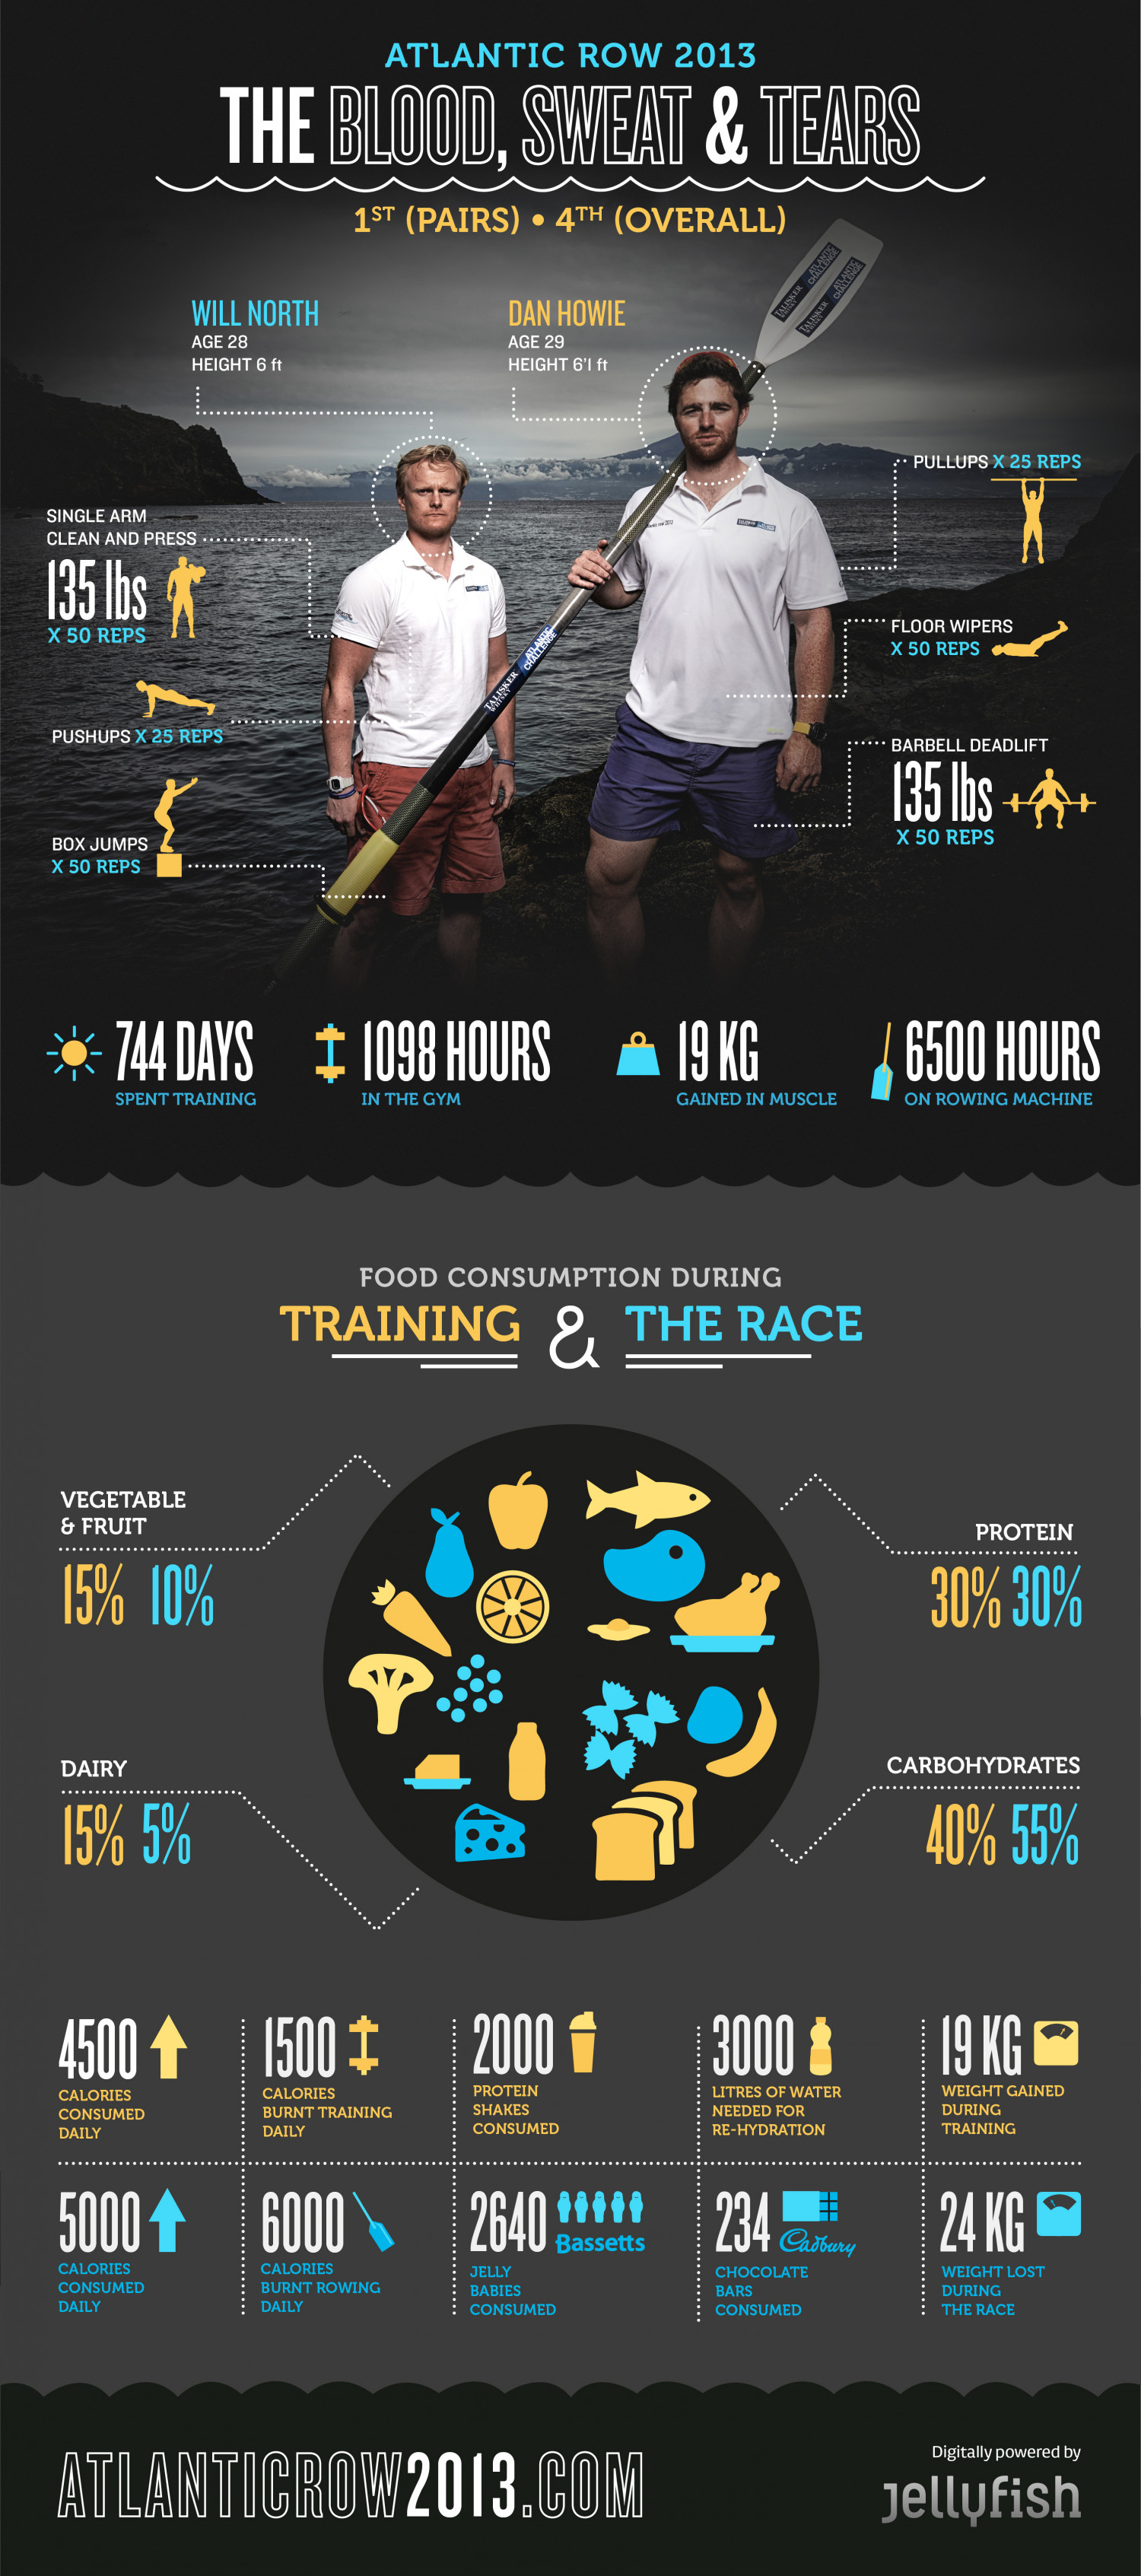 Atlantic Row 2013 - The Blood, Sweat & Tears Infographic